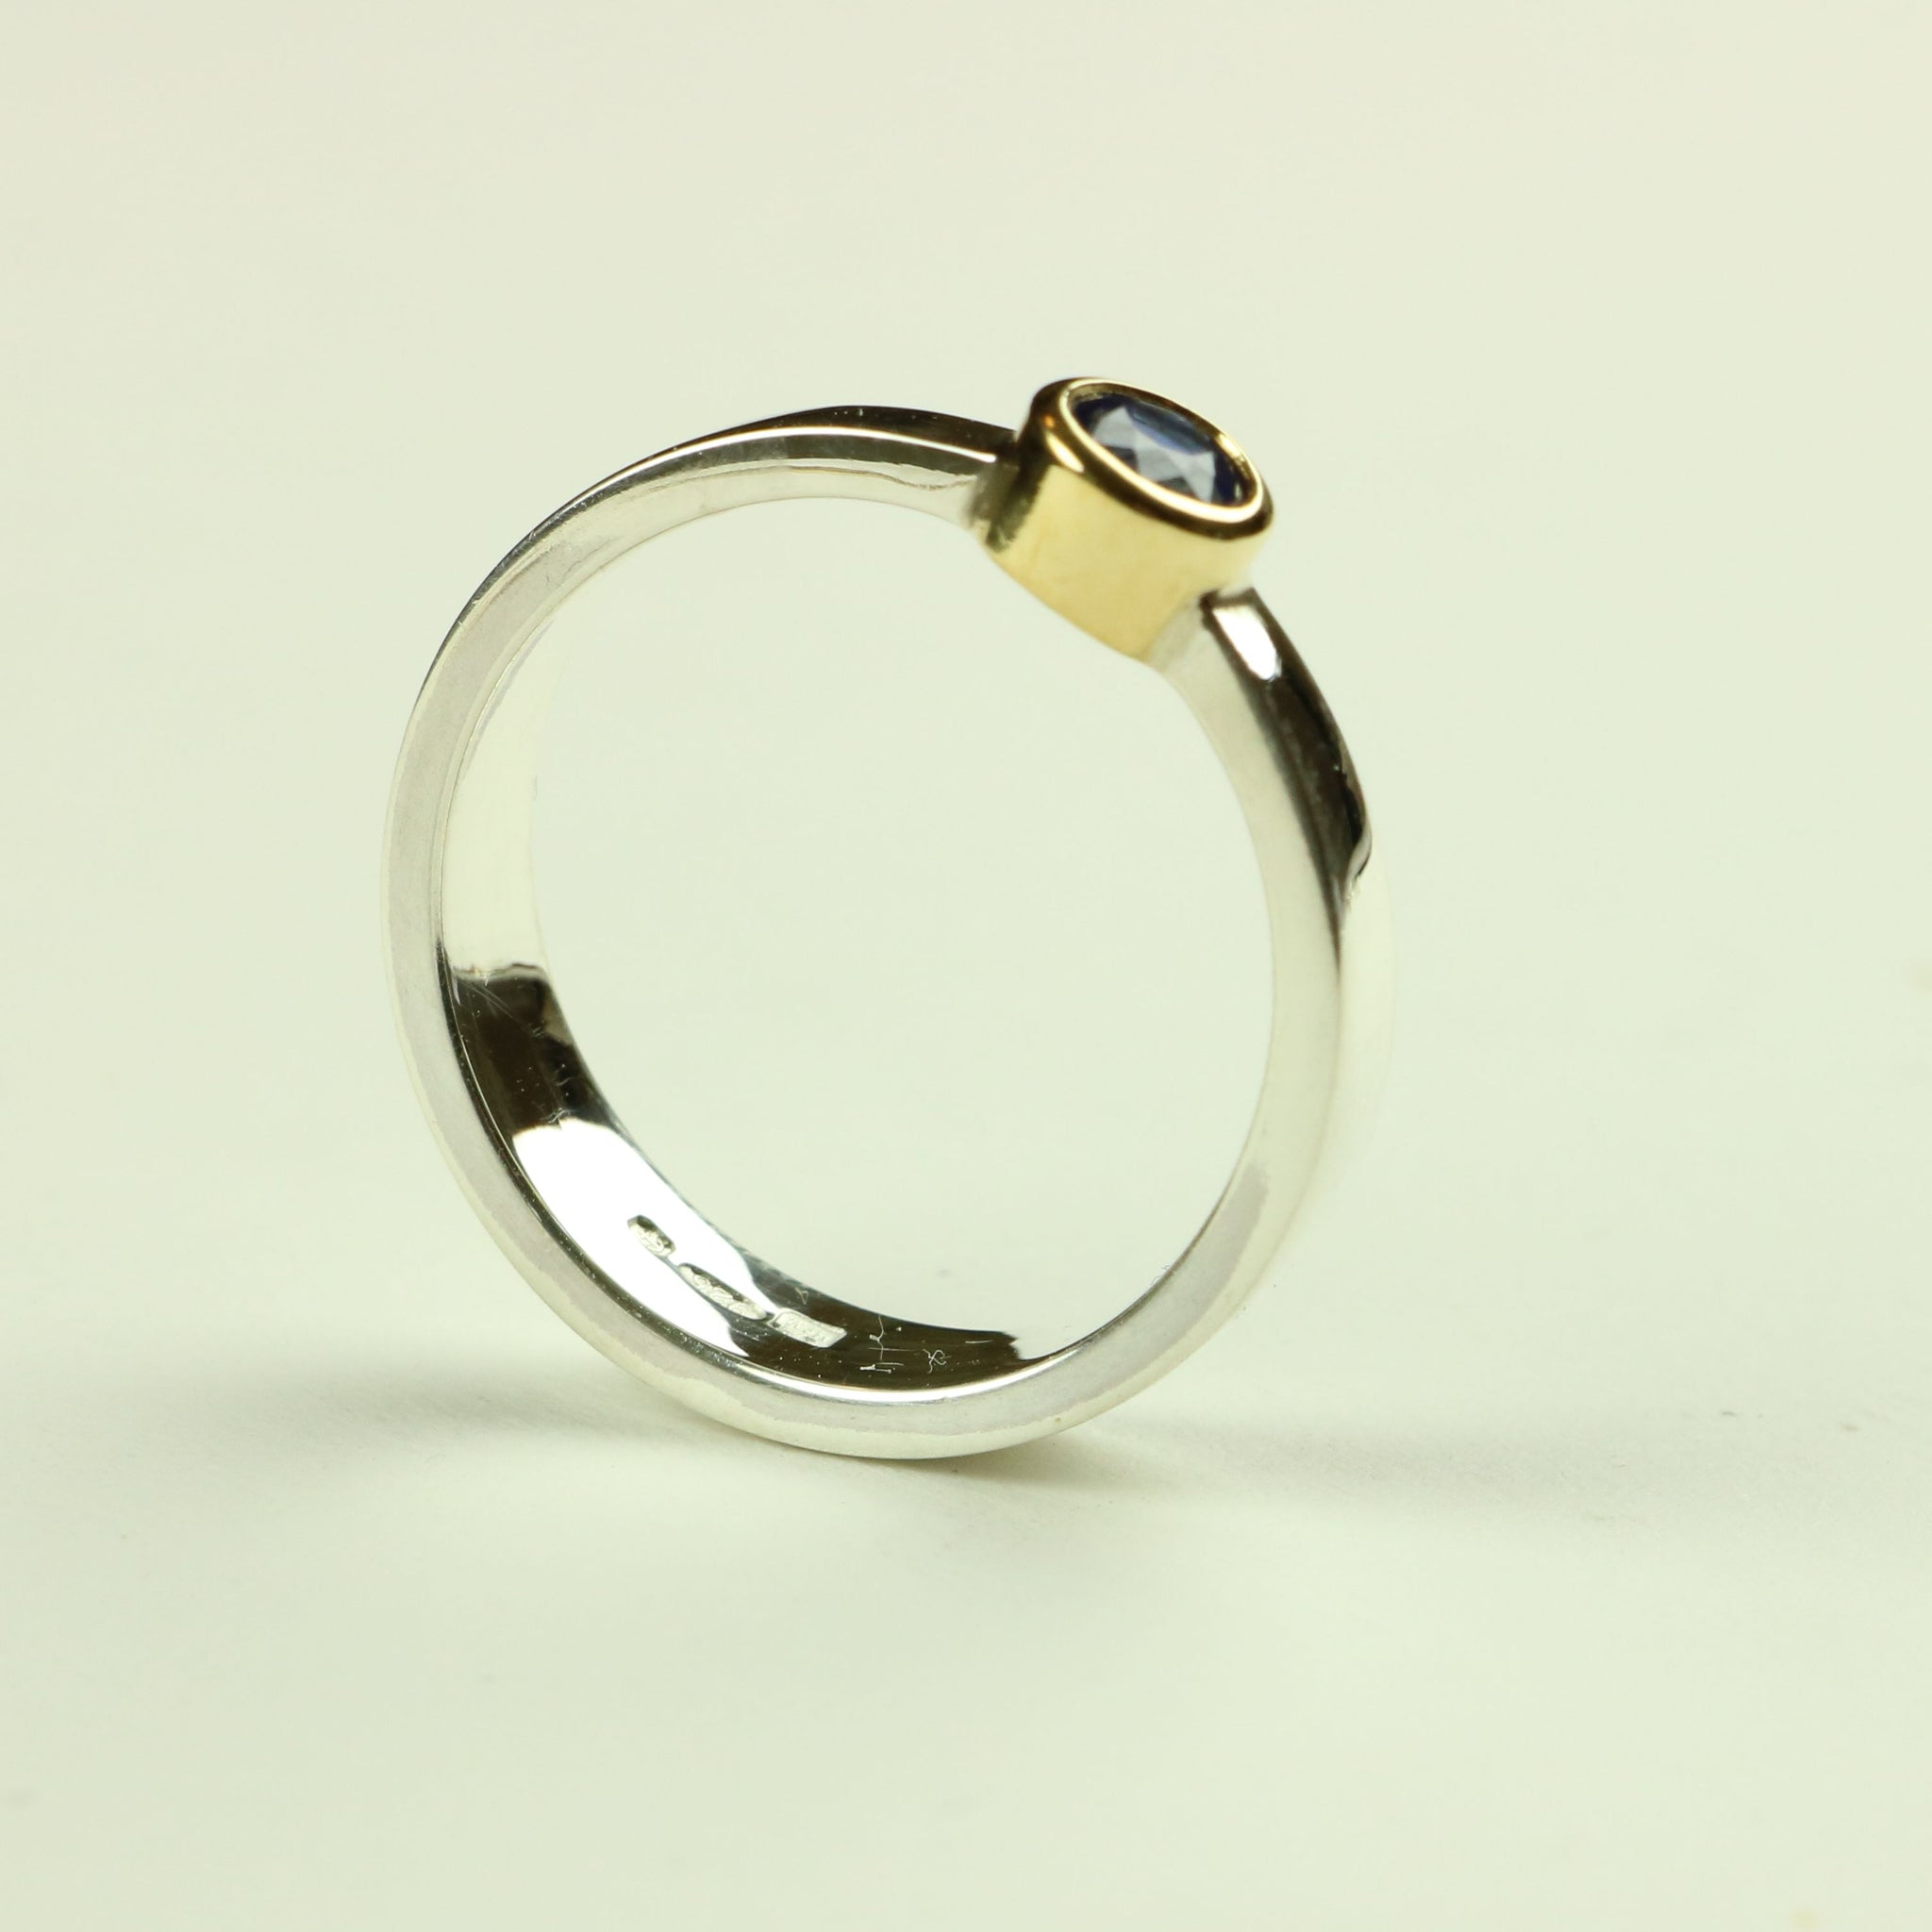 Taper Ring in Silver and Gold with Blue Sapphire